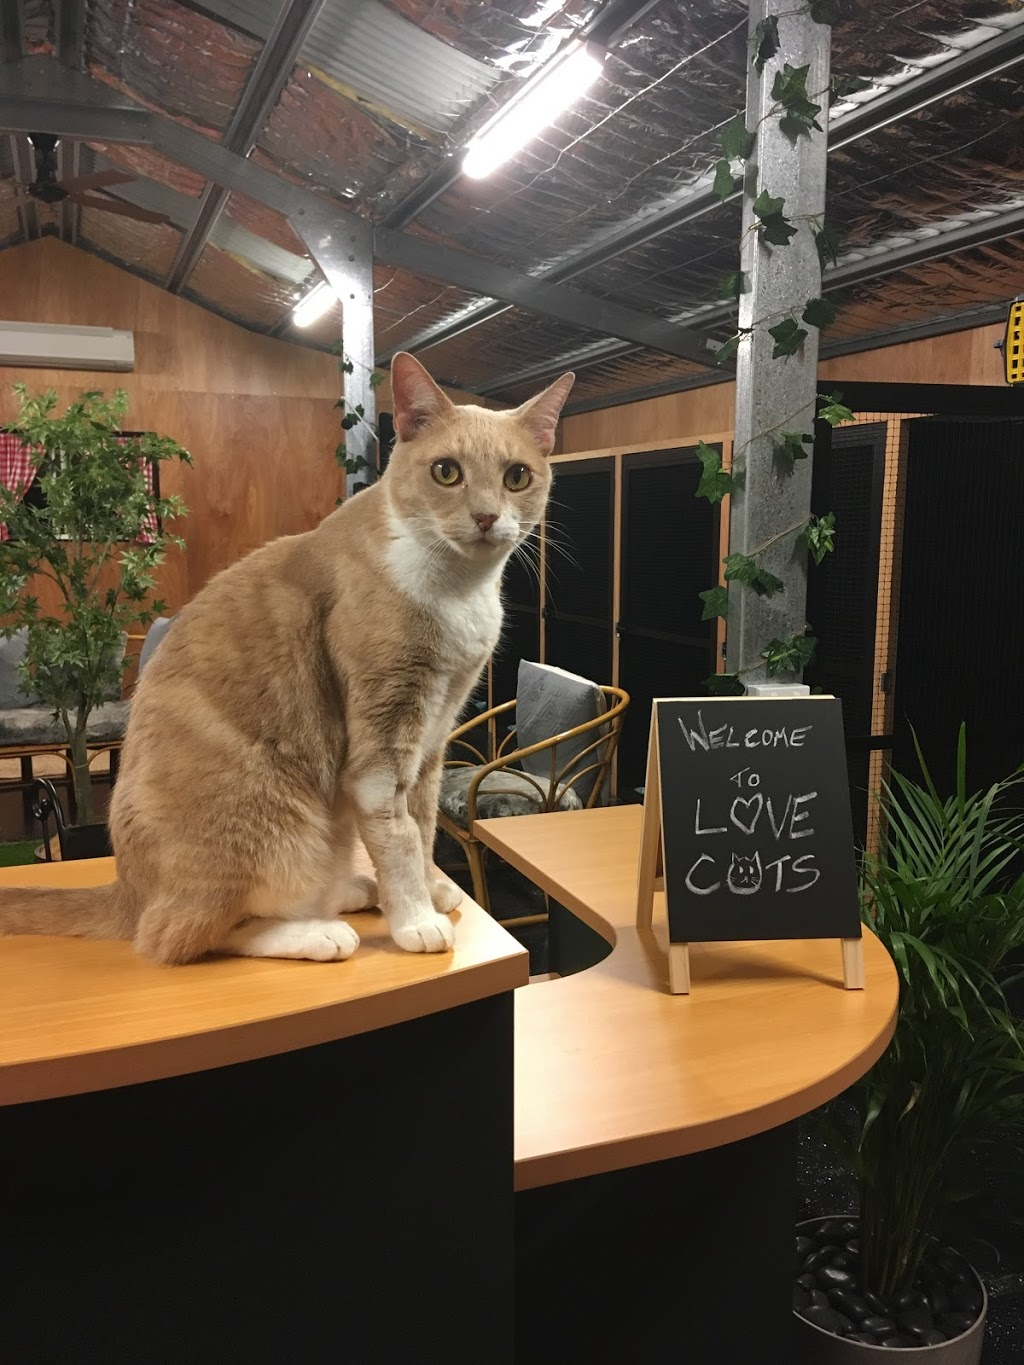 Love Cats Bed n Breakfast | veterinary care | 11 Dicksons Rd, Jilliby NSW 2259, Australia | 0412999505 OR +61 412 999 505